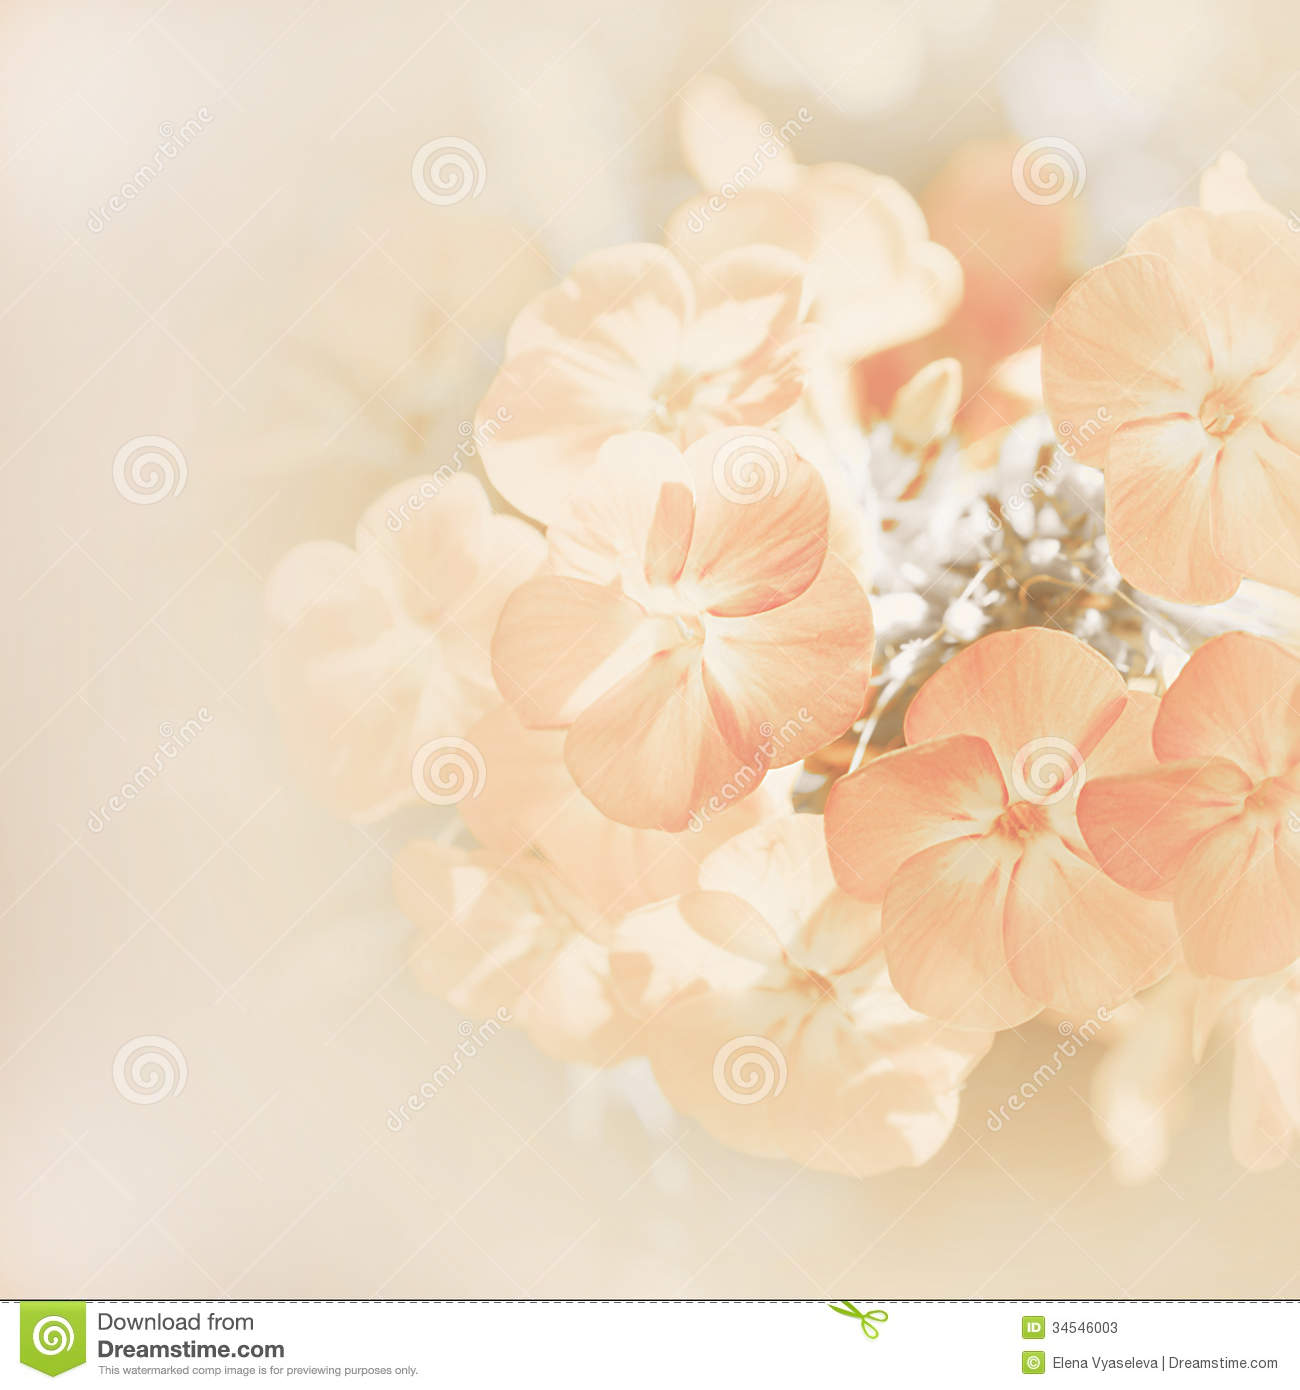 Elegant 3d Desktop Wallpaper Soft Blur Background With Flowers Stock Photos Image